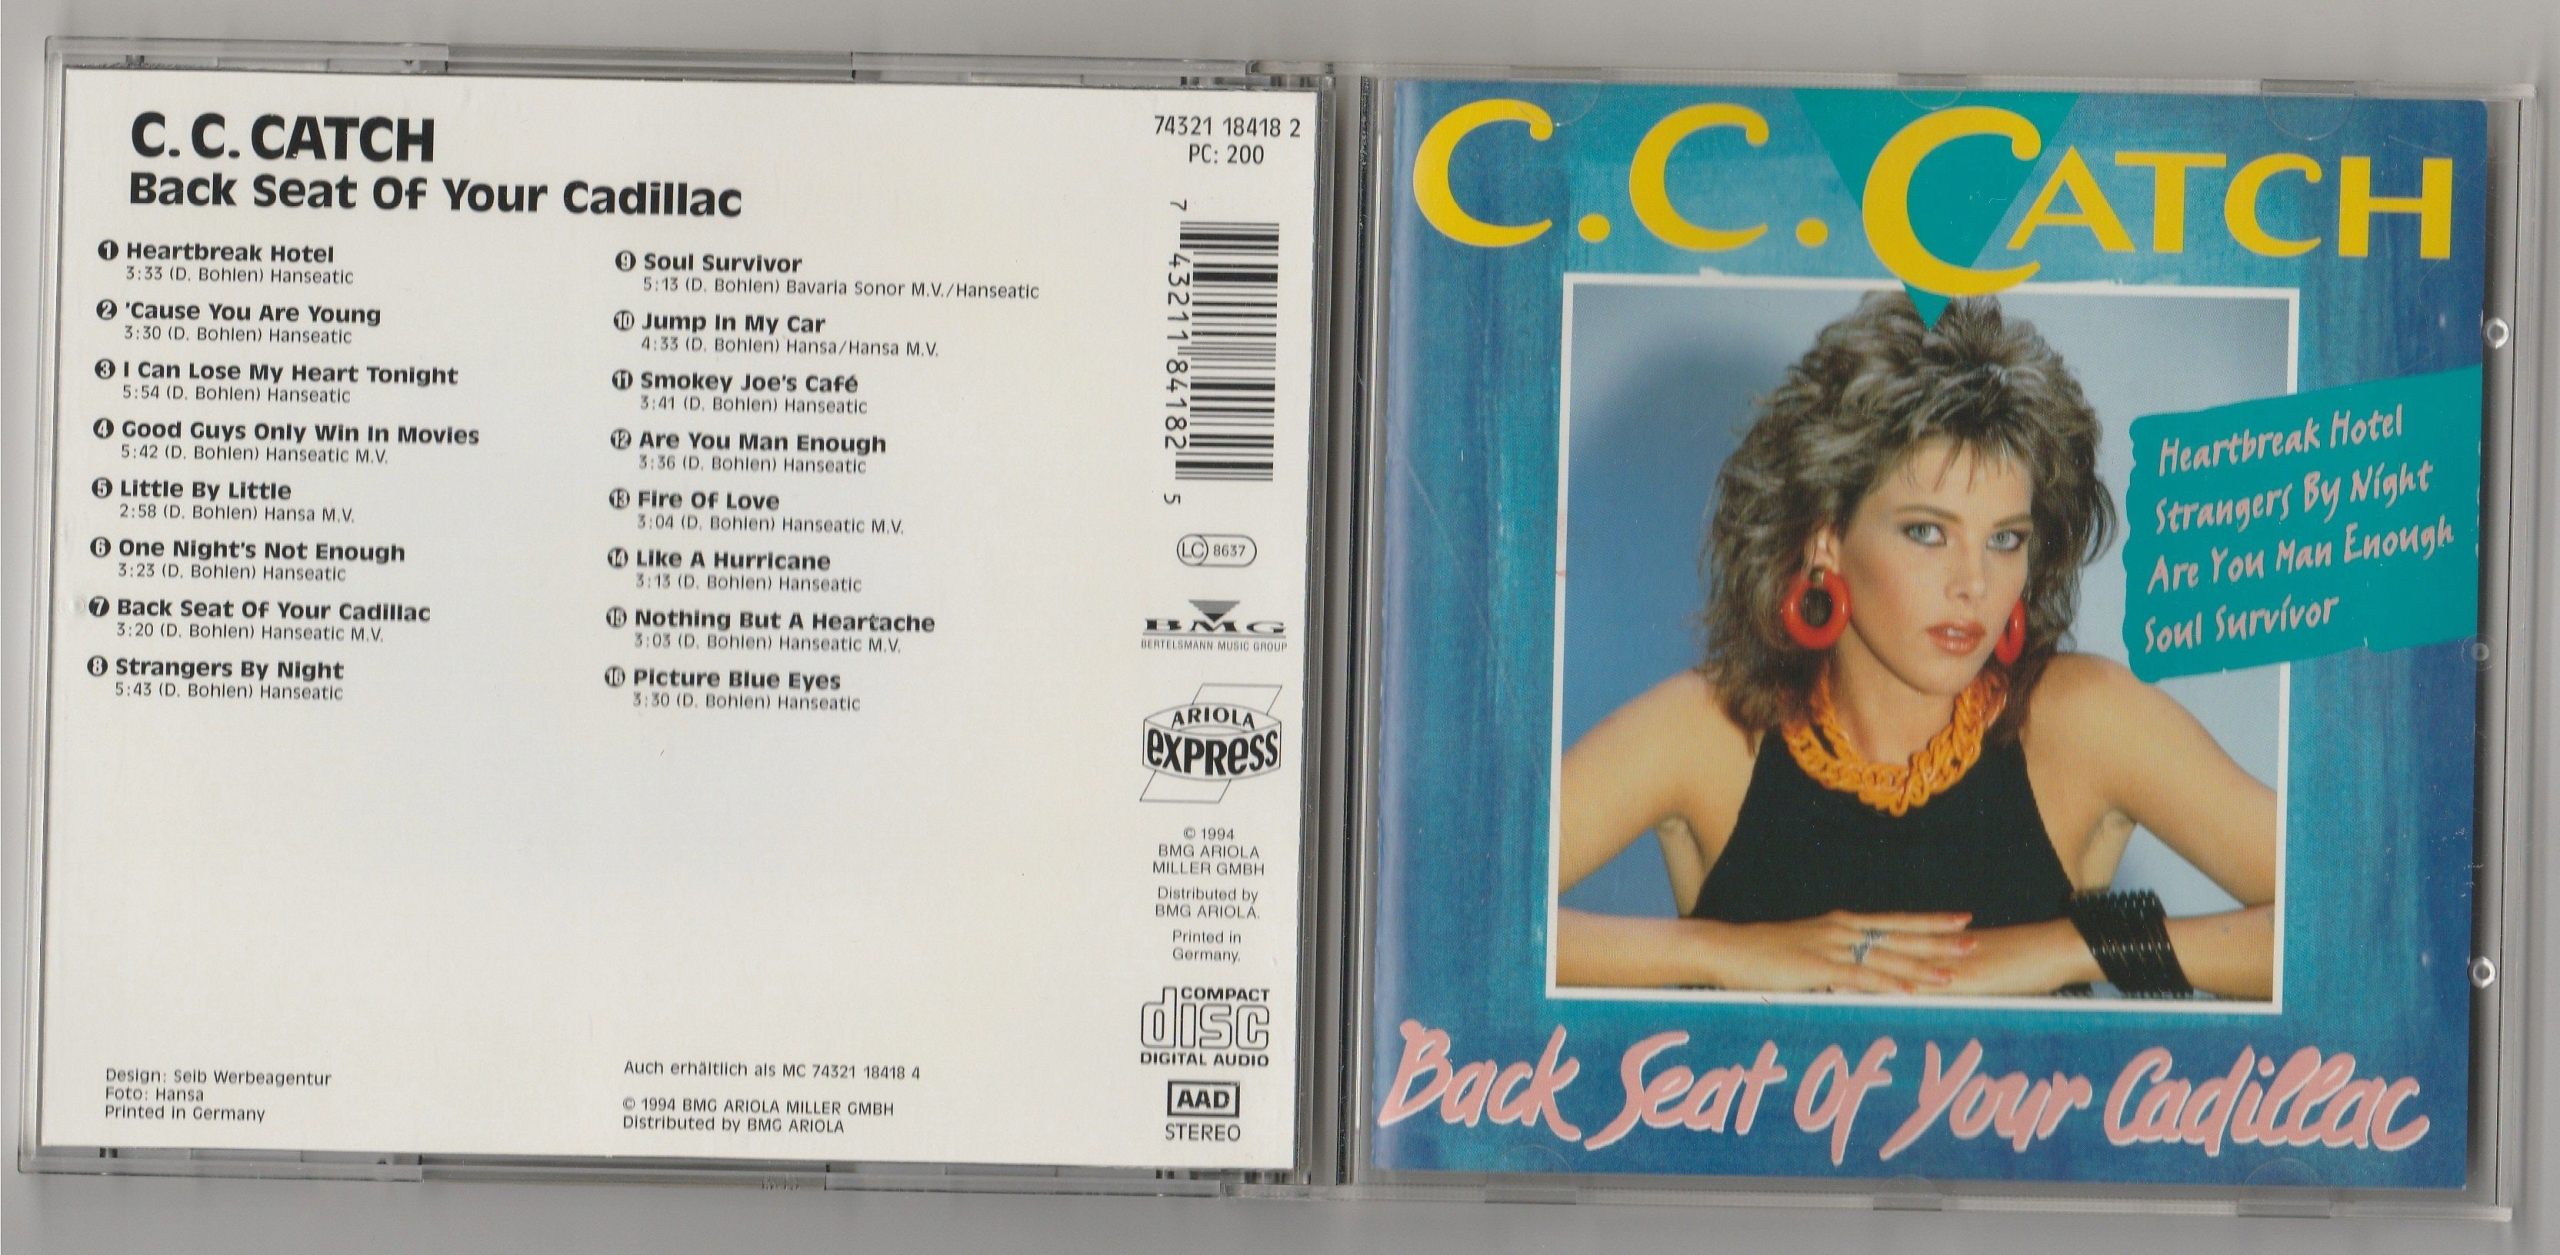 C C CATCH Back Seat Of Your Cadillac CD 1994 IDEAL